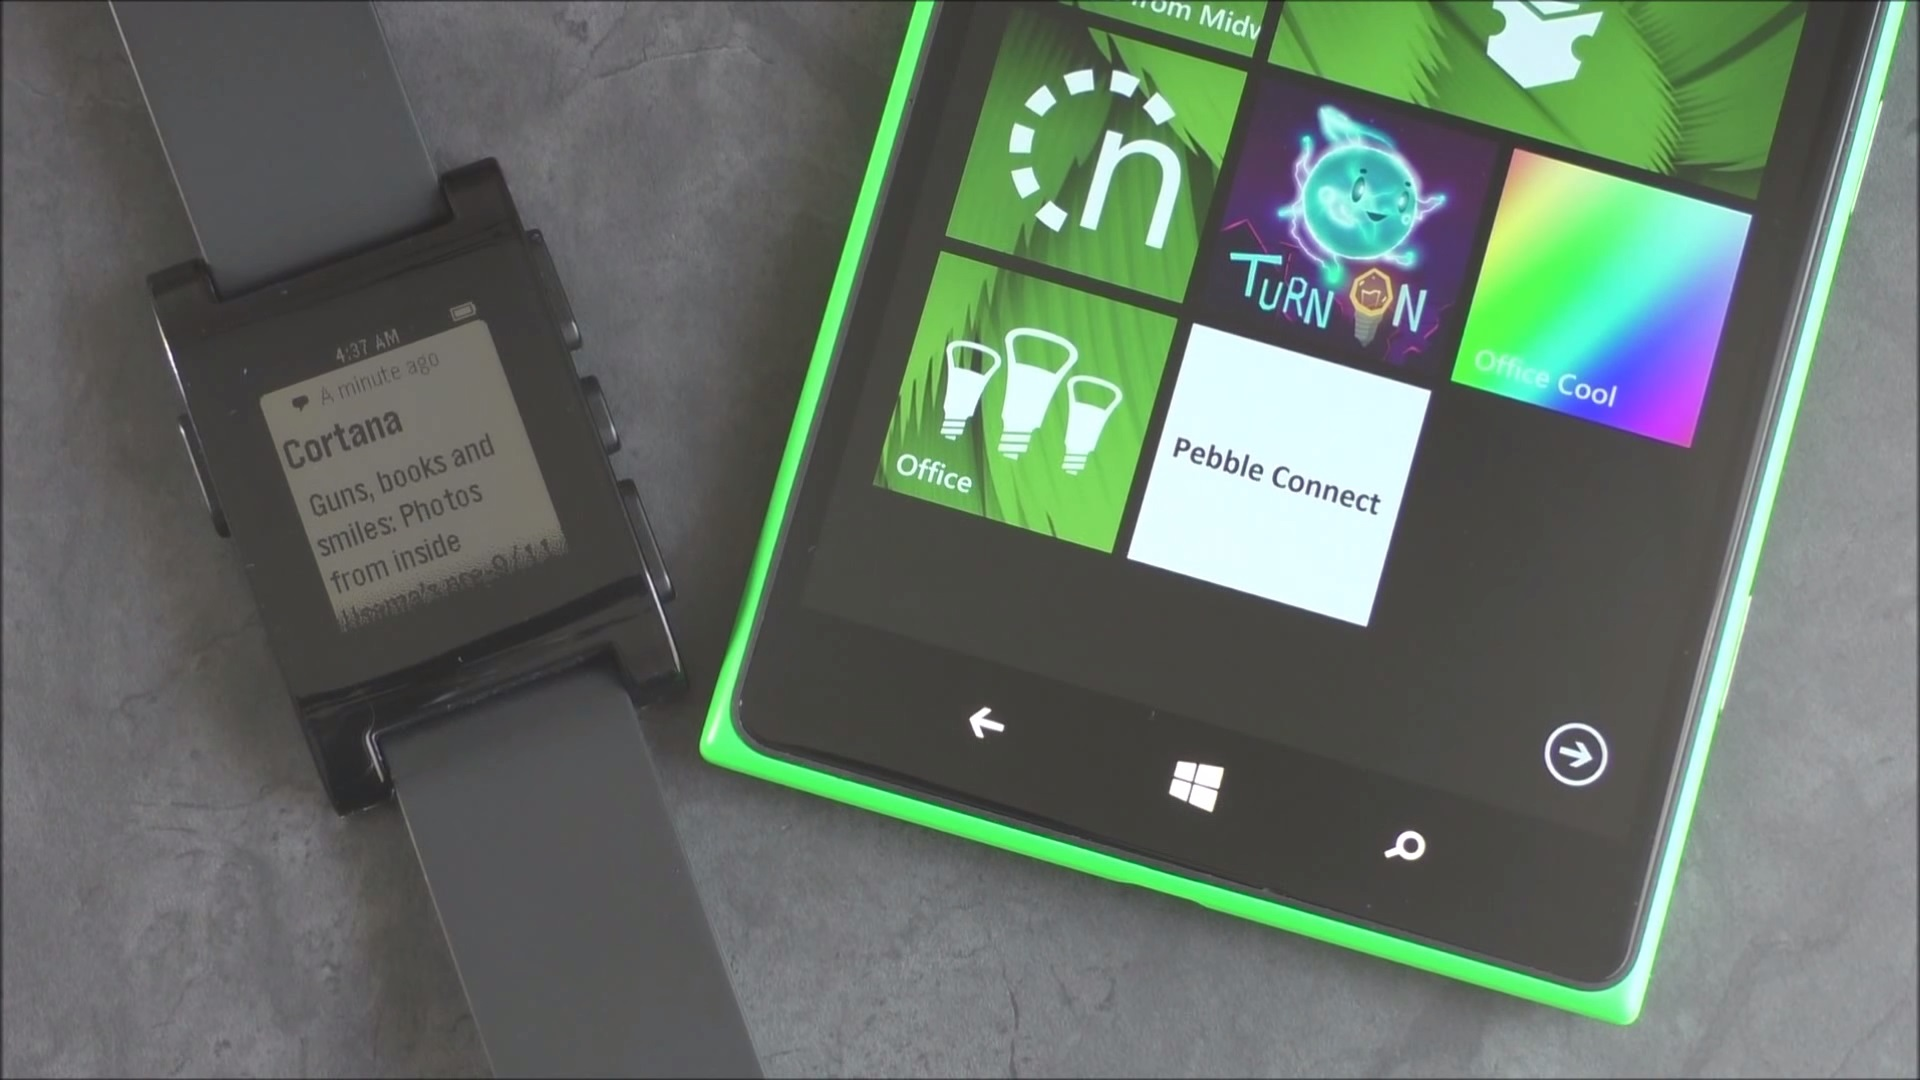 pebble_connector_windows_phone